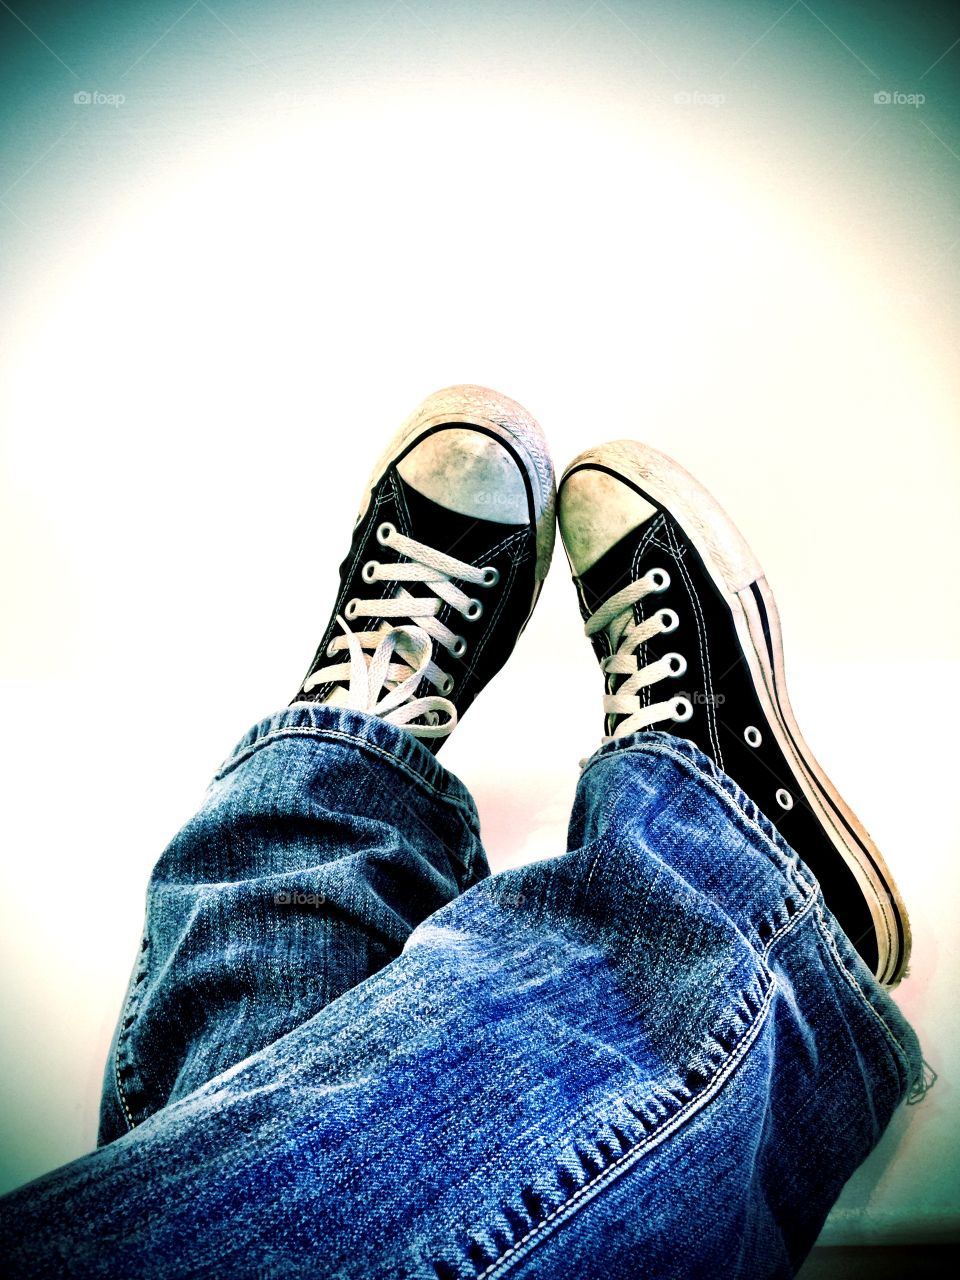 Converse confort. Relaxing